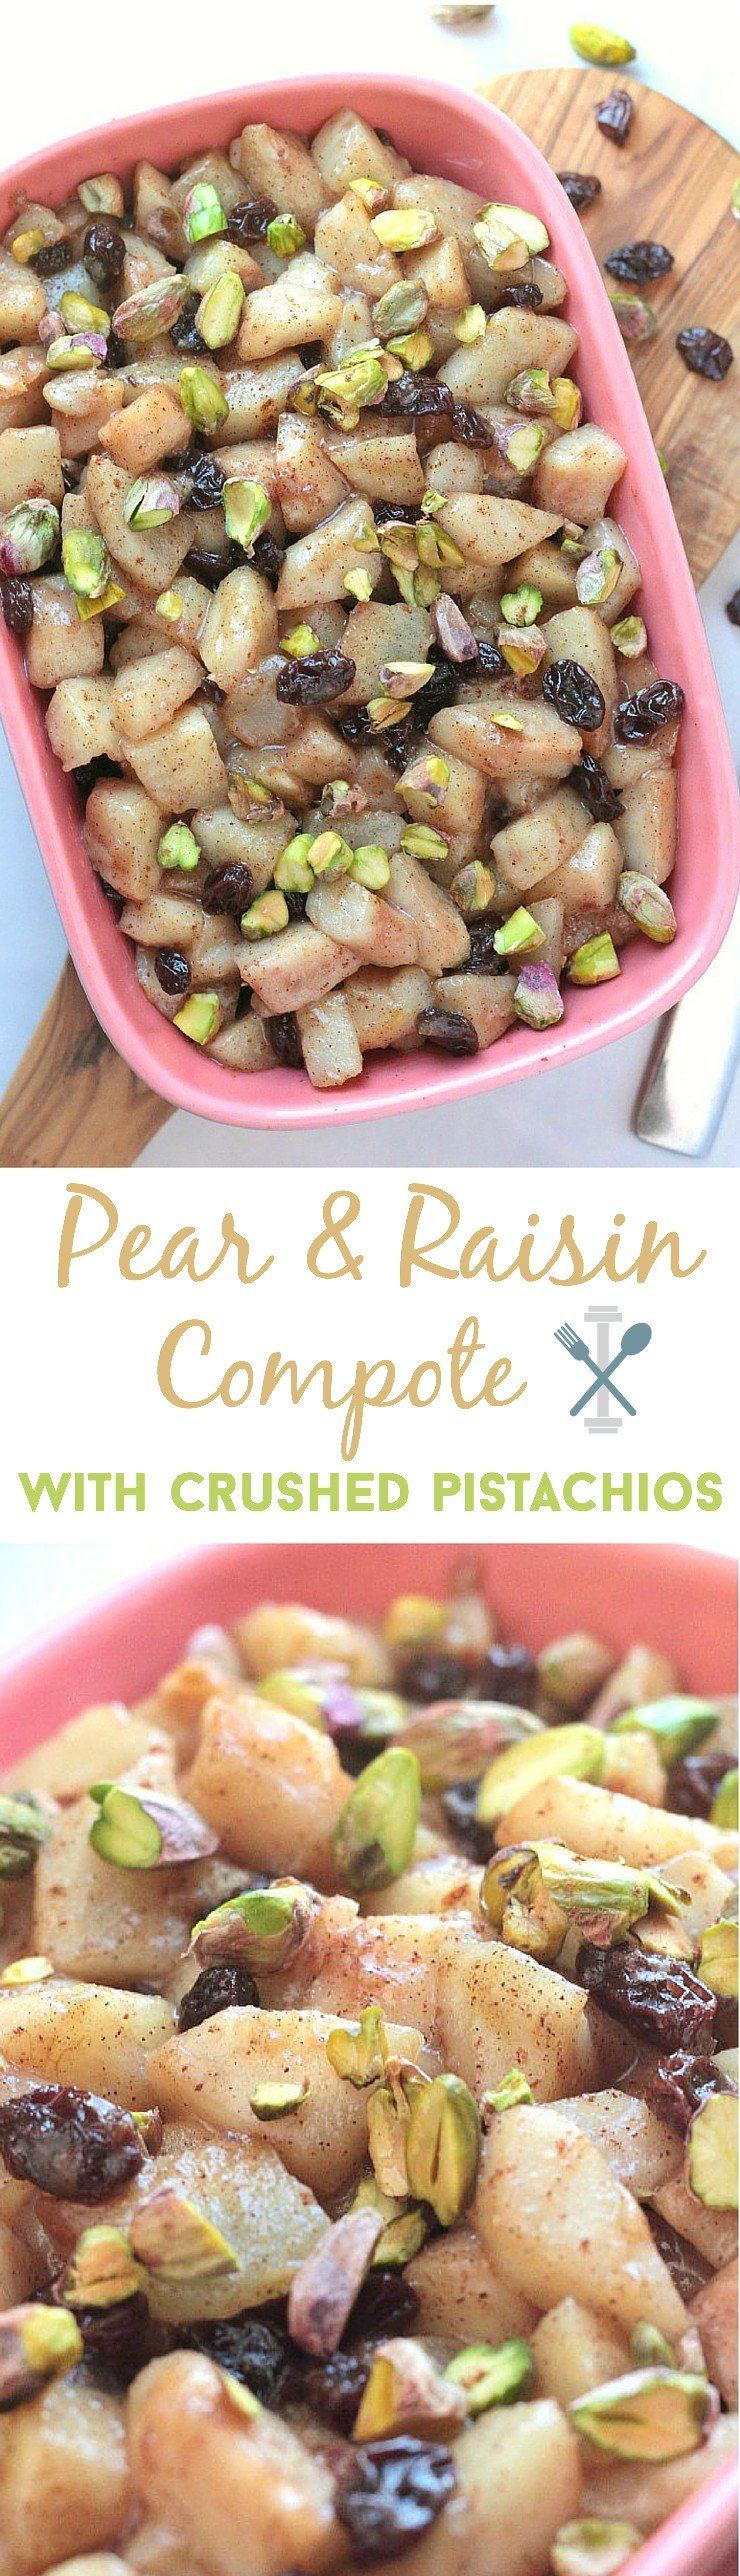 PALEO pear & raisin compote with crushed pistachios. A delicious dessert made in 10 minutes! A perfect, clean treat for two.